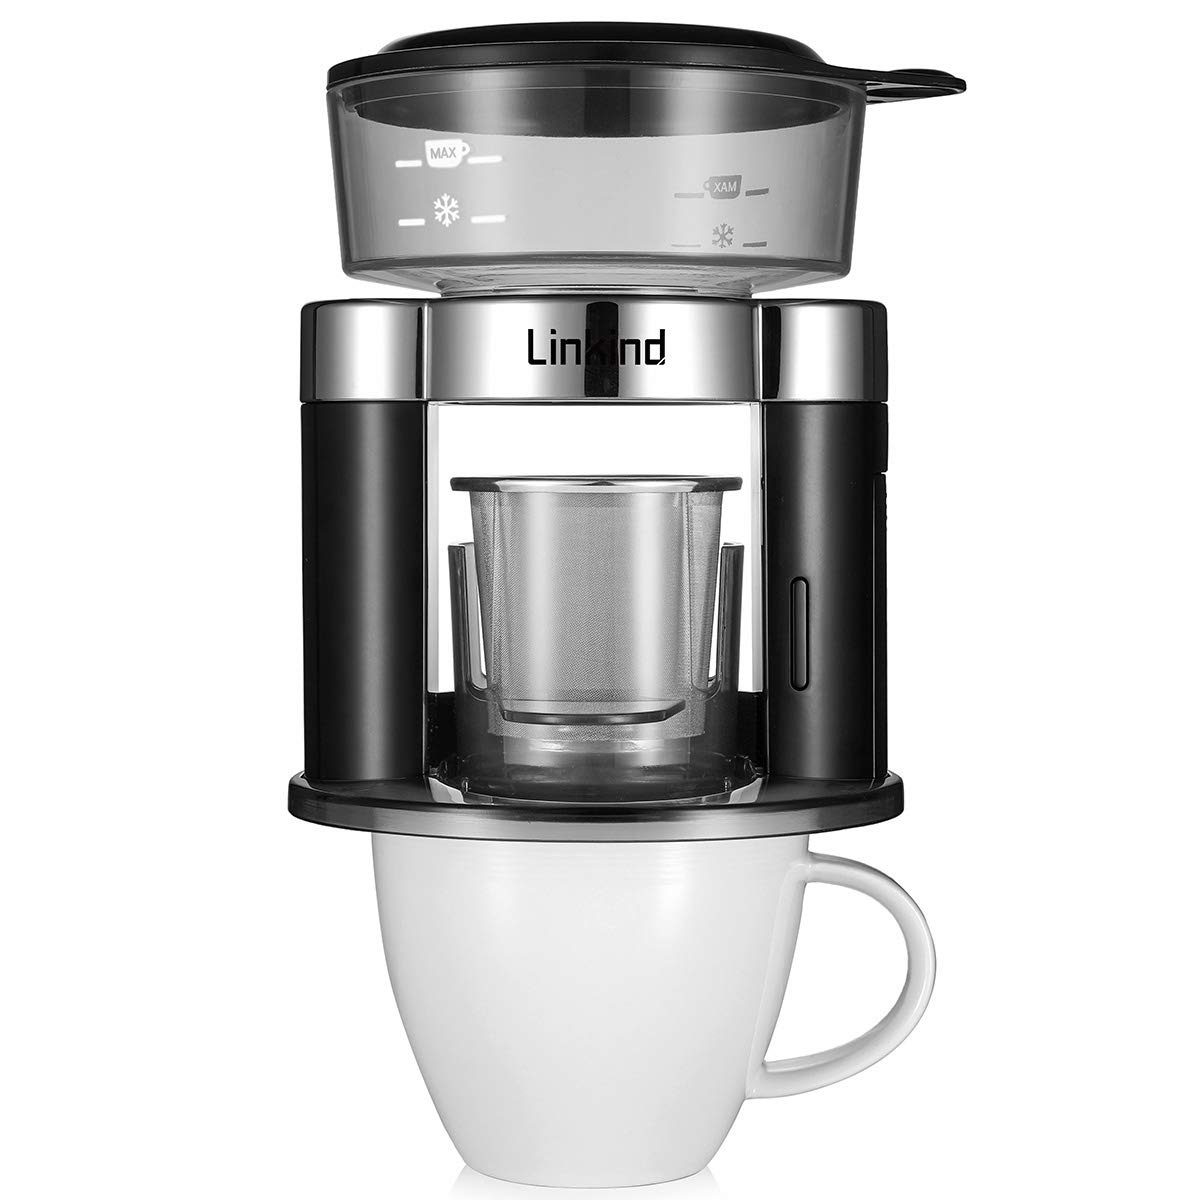 Linkind Automatic Pour Over Coffee Maker 120ml One Cup Battery Driven Brewer With Reusable Stainless Steel Filter Simulate Handcraft Compact In Size Portable For Indoor And Outdoor Use Black